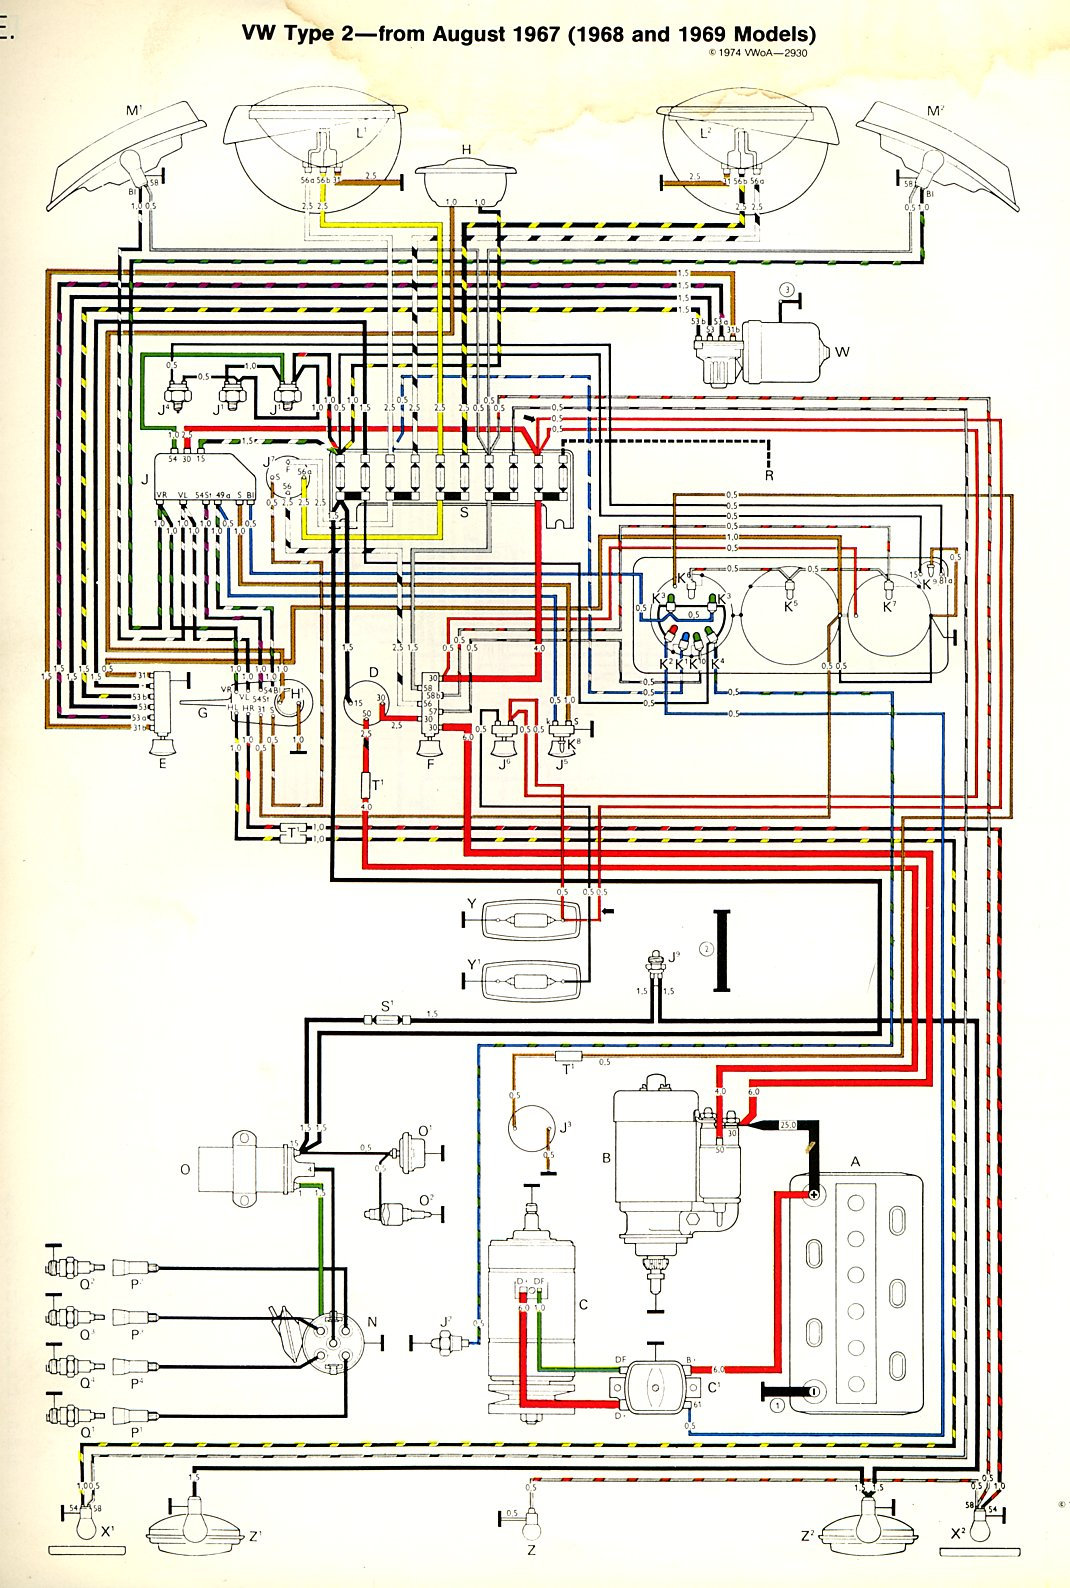 hight resolution of 1974 vw bus alternator wiring wiring diagram blog 1974 vw bus alternator wiring 1974 vw bus alternator wiring